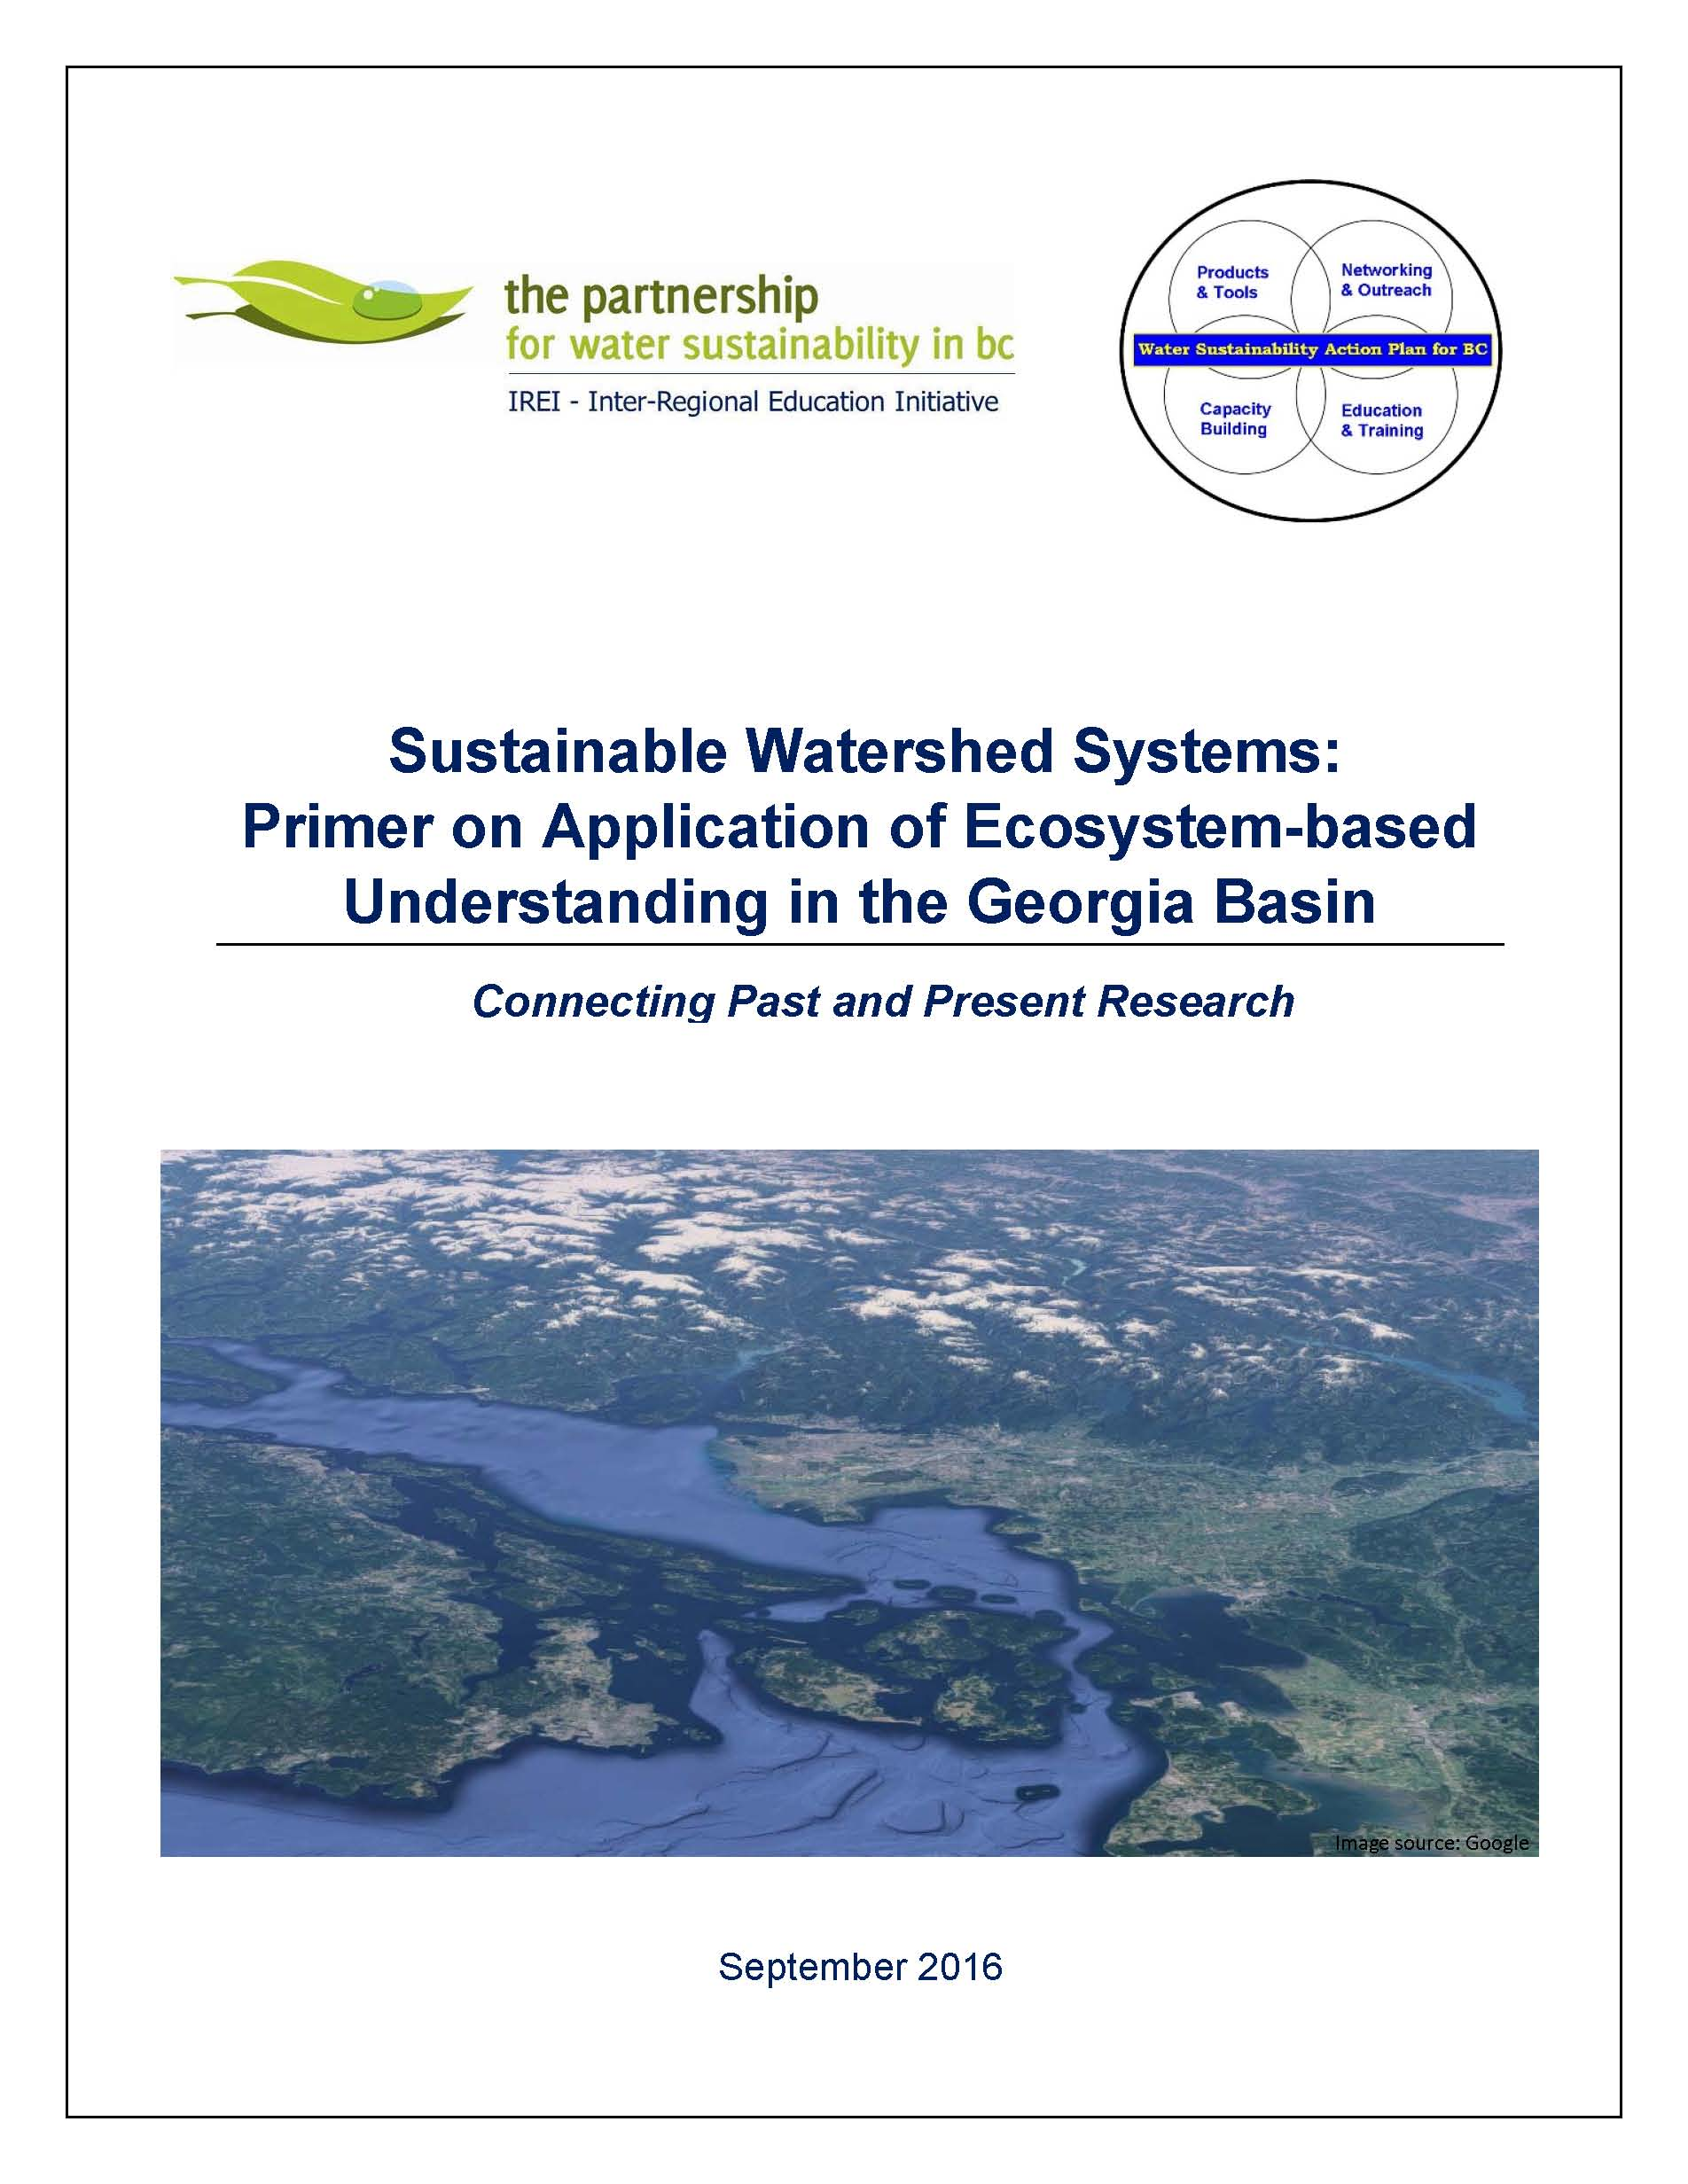 primer-on-application-of-ecosystem-based-understanding_sept-2016_cover